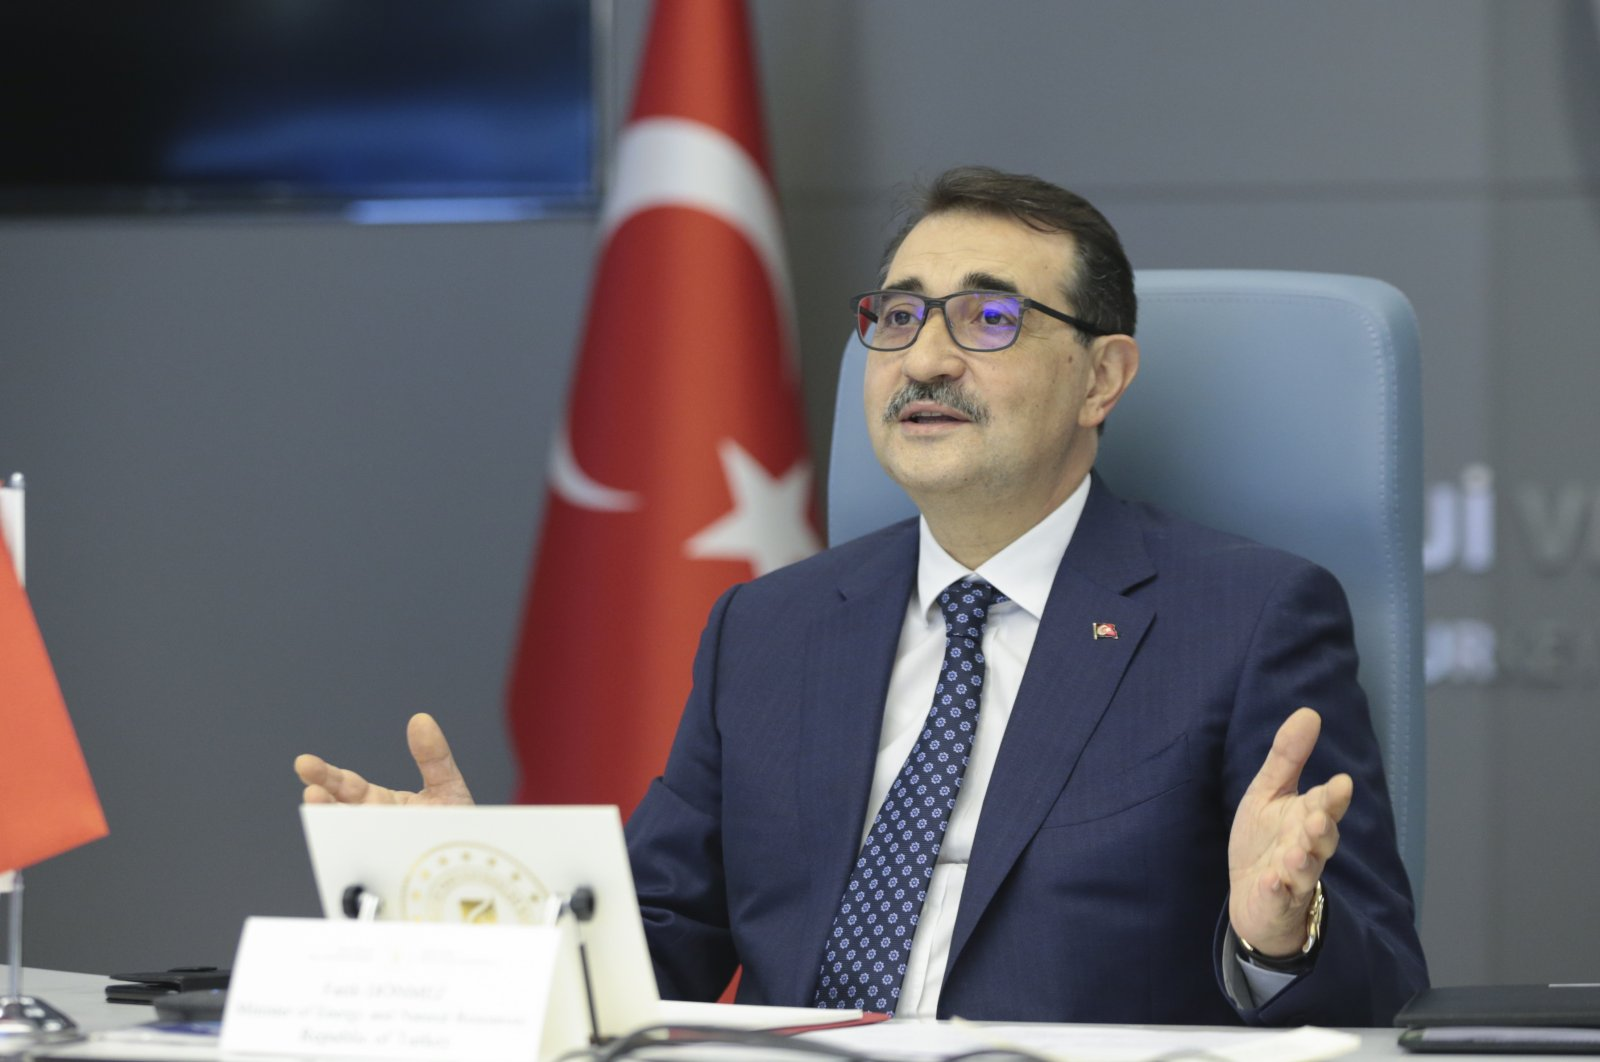 Energy and Natural Resources Minister Fatih Dönmez speaks during the Turkic council energy ministeries meeting held online, Ankara, Turkey, Feb. 24, 2021. (AA Photo)